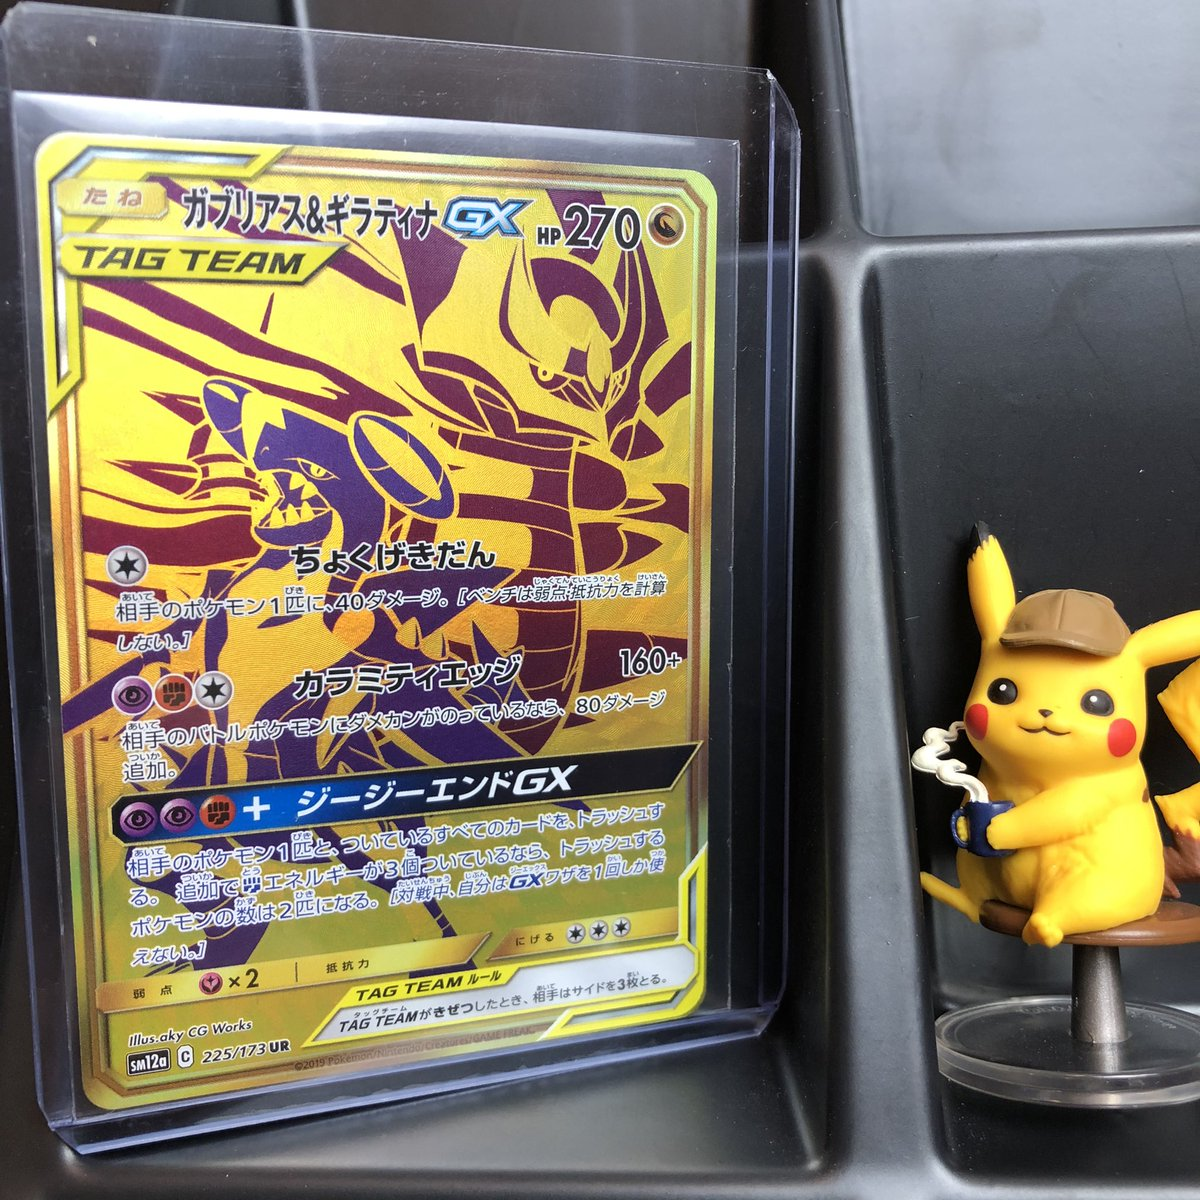 Mint condition! Never played. Pulled and sleeved.  Get it HERE!   Tag Team GX All Stars SM12A Garchomp & Giratina GX 225 UR - Japanese  #Pokemon #PokemonCards #ShinyPokemon #PokemonSwordShield #PokemonTCG